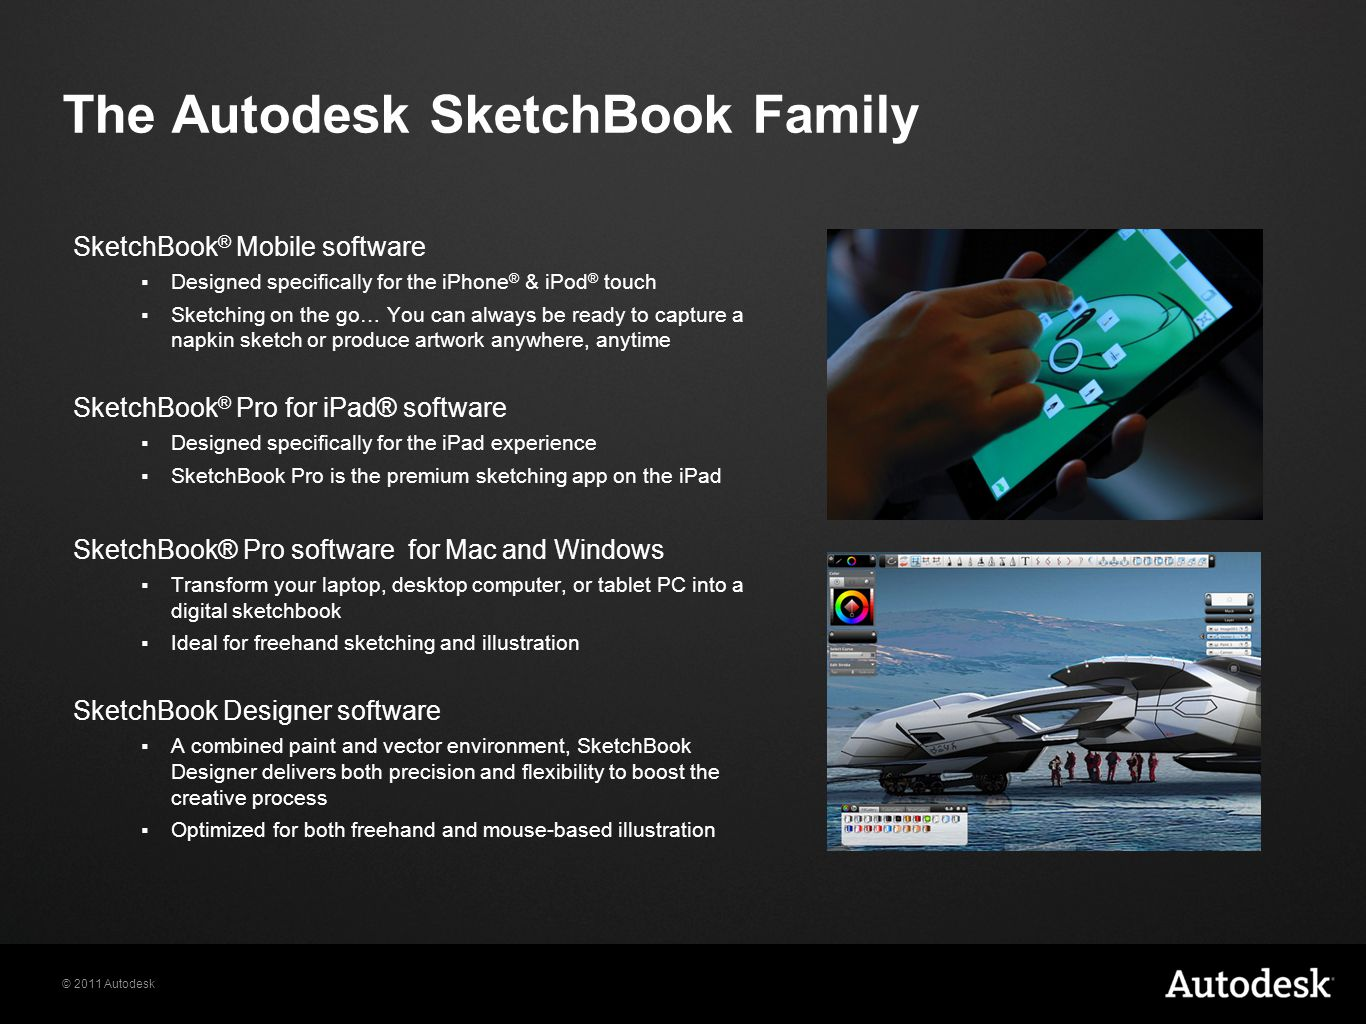 The Autodesk SketchBook Family